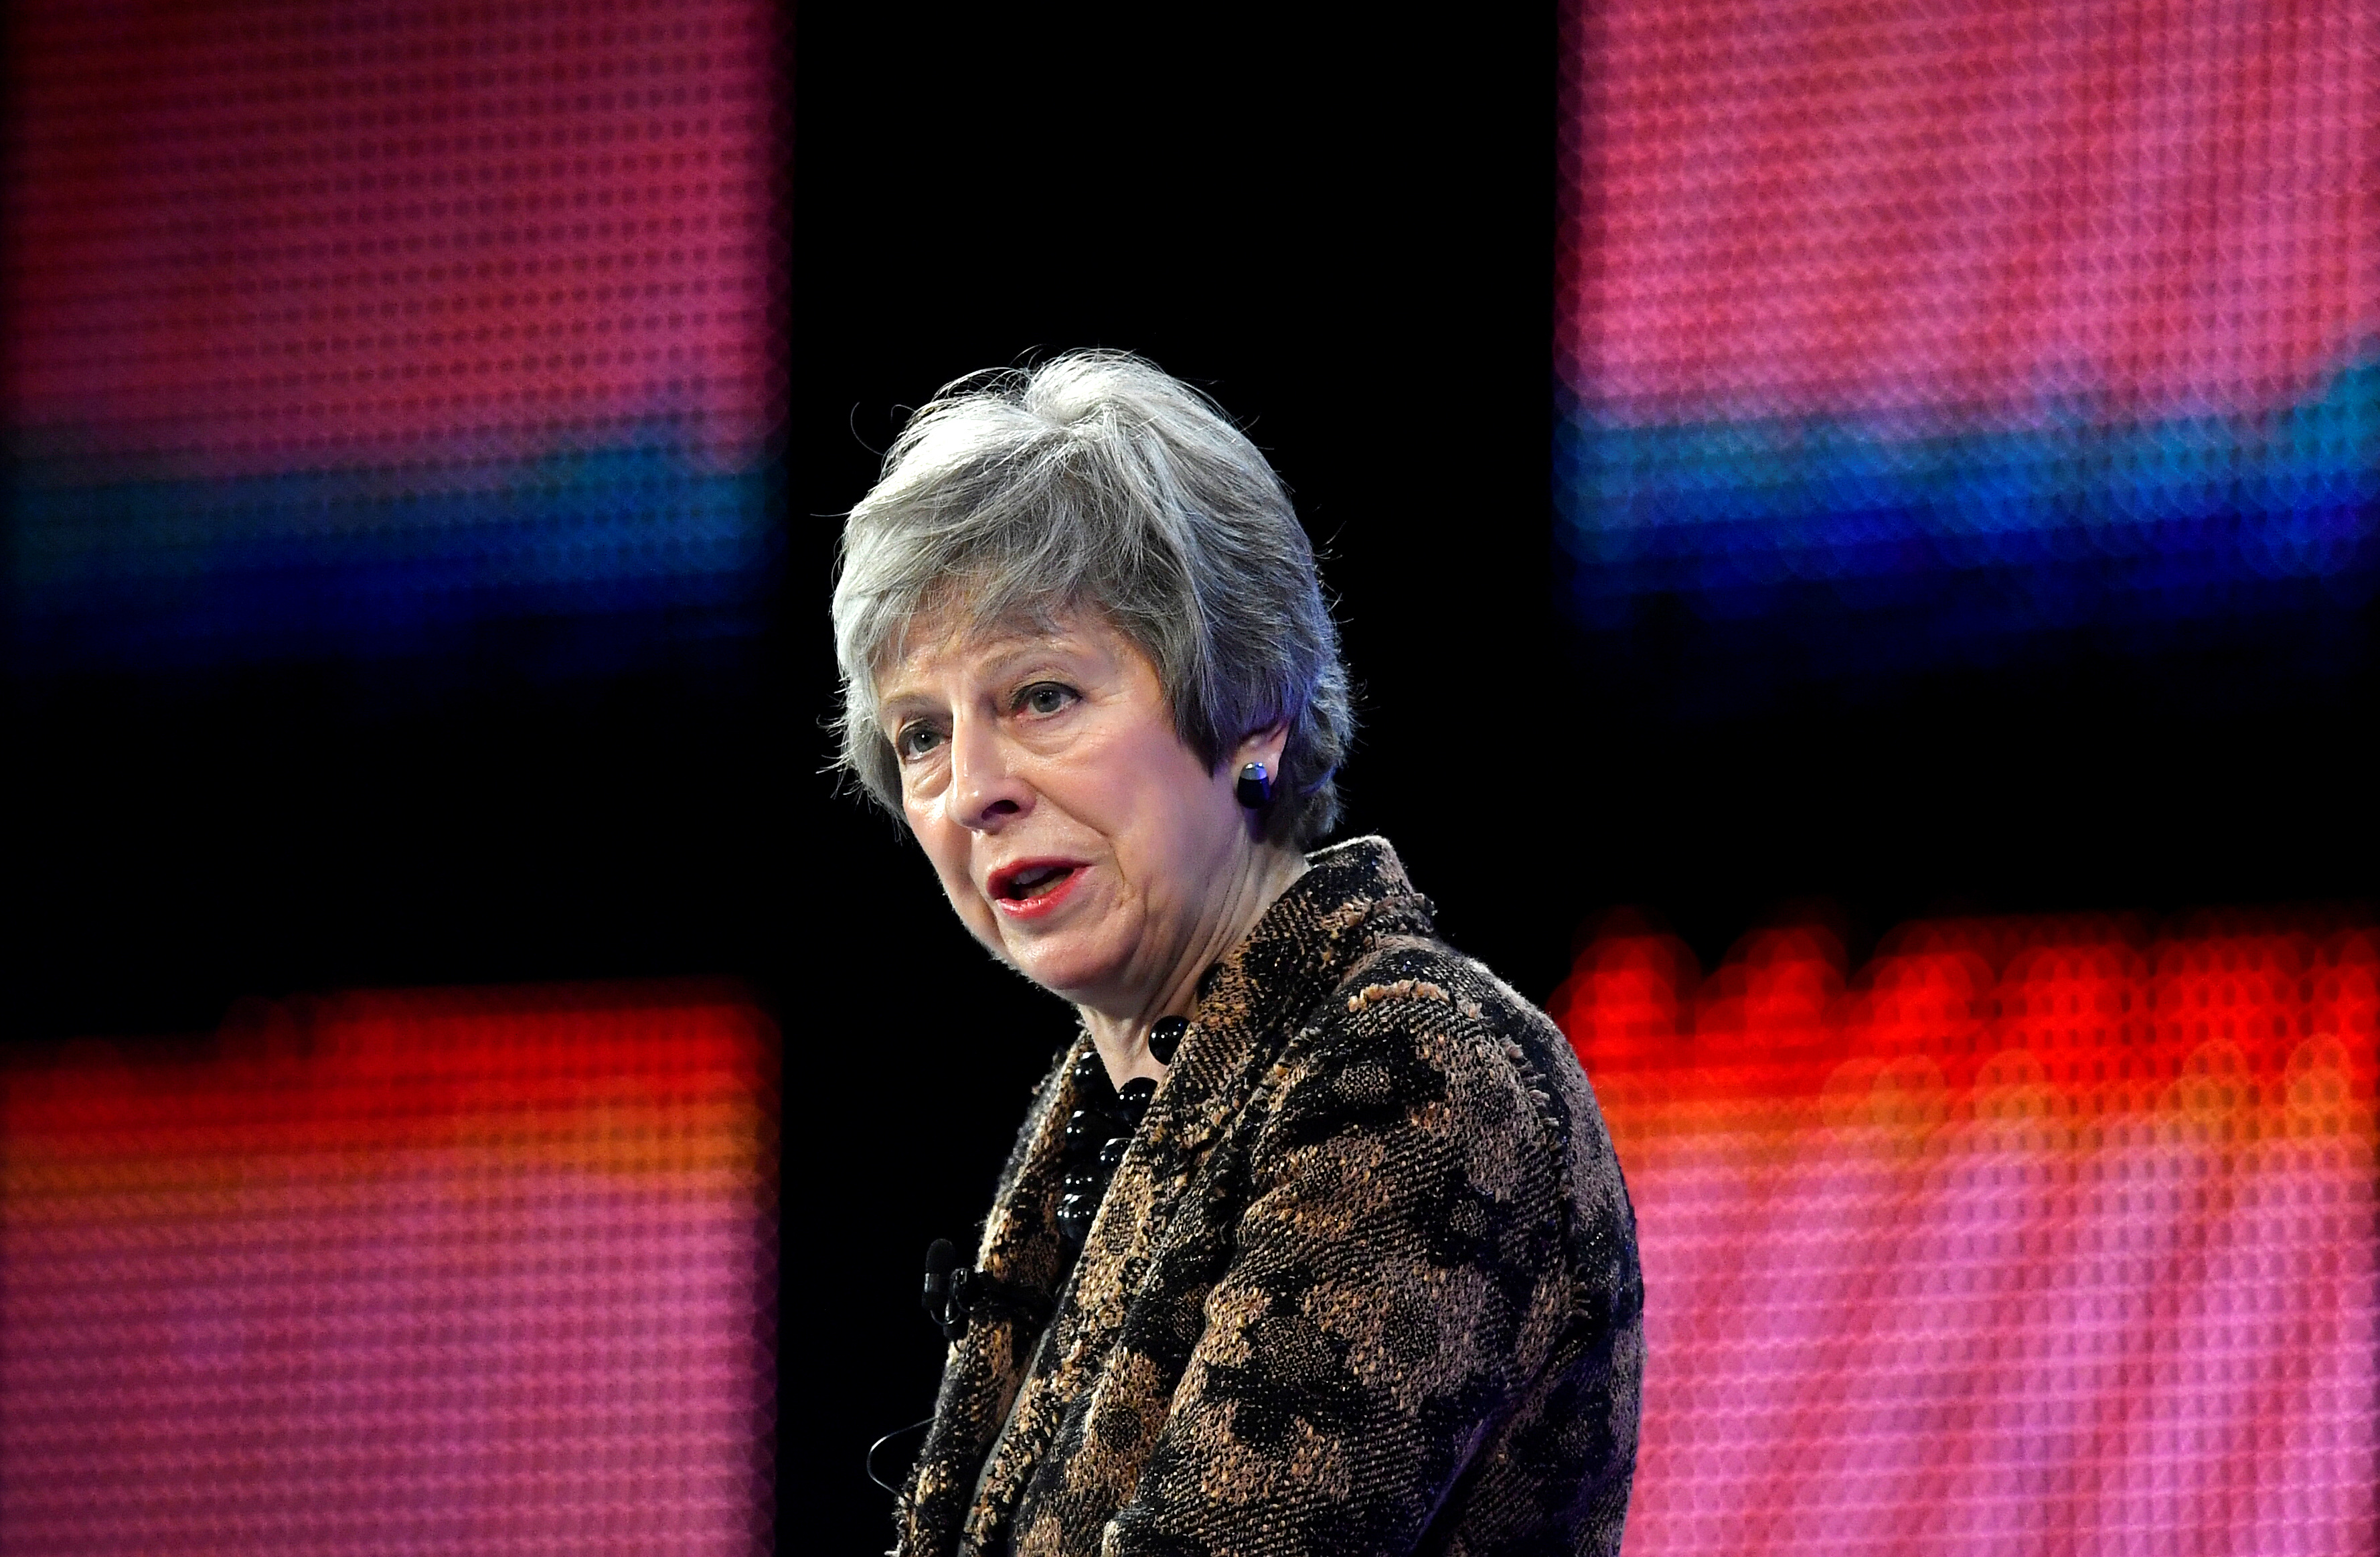 Britain's Prime Minister Theresa May replies to questions after speaking at the Confederation of British Industry's (CBI) annual conference in London